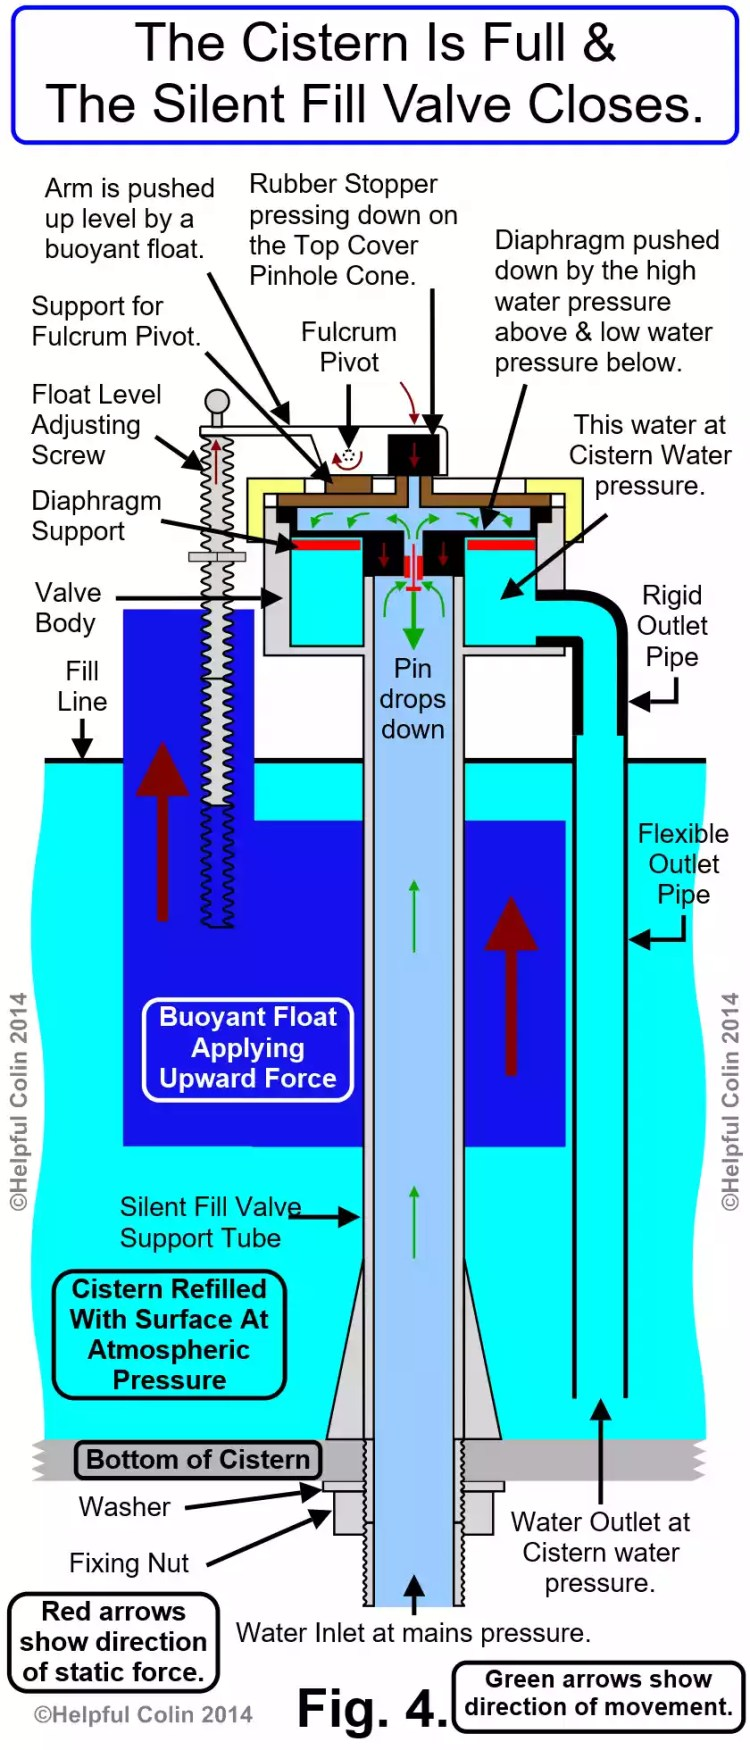 The Cistern Is Full & The Silent Fill Valve Closes